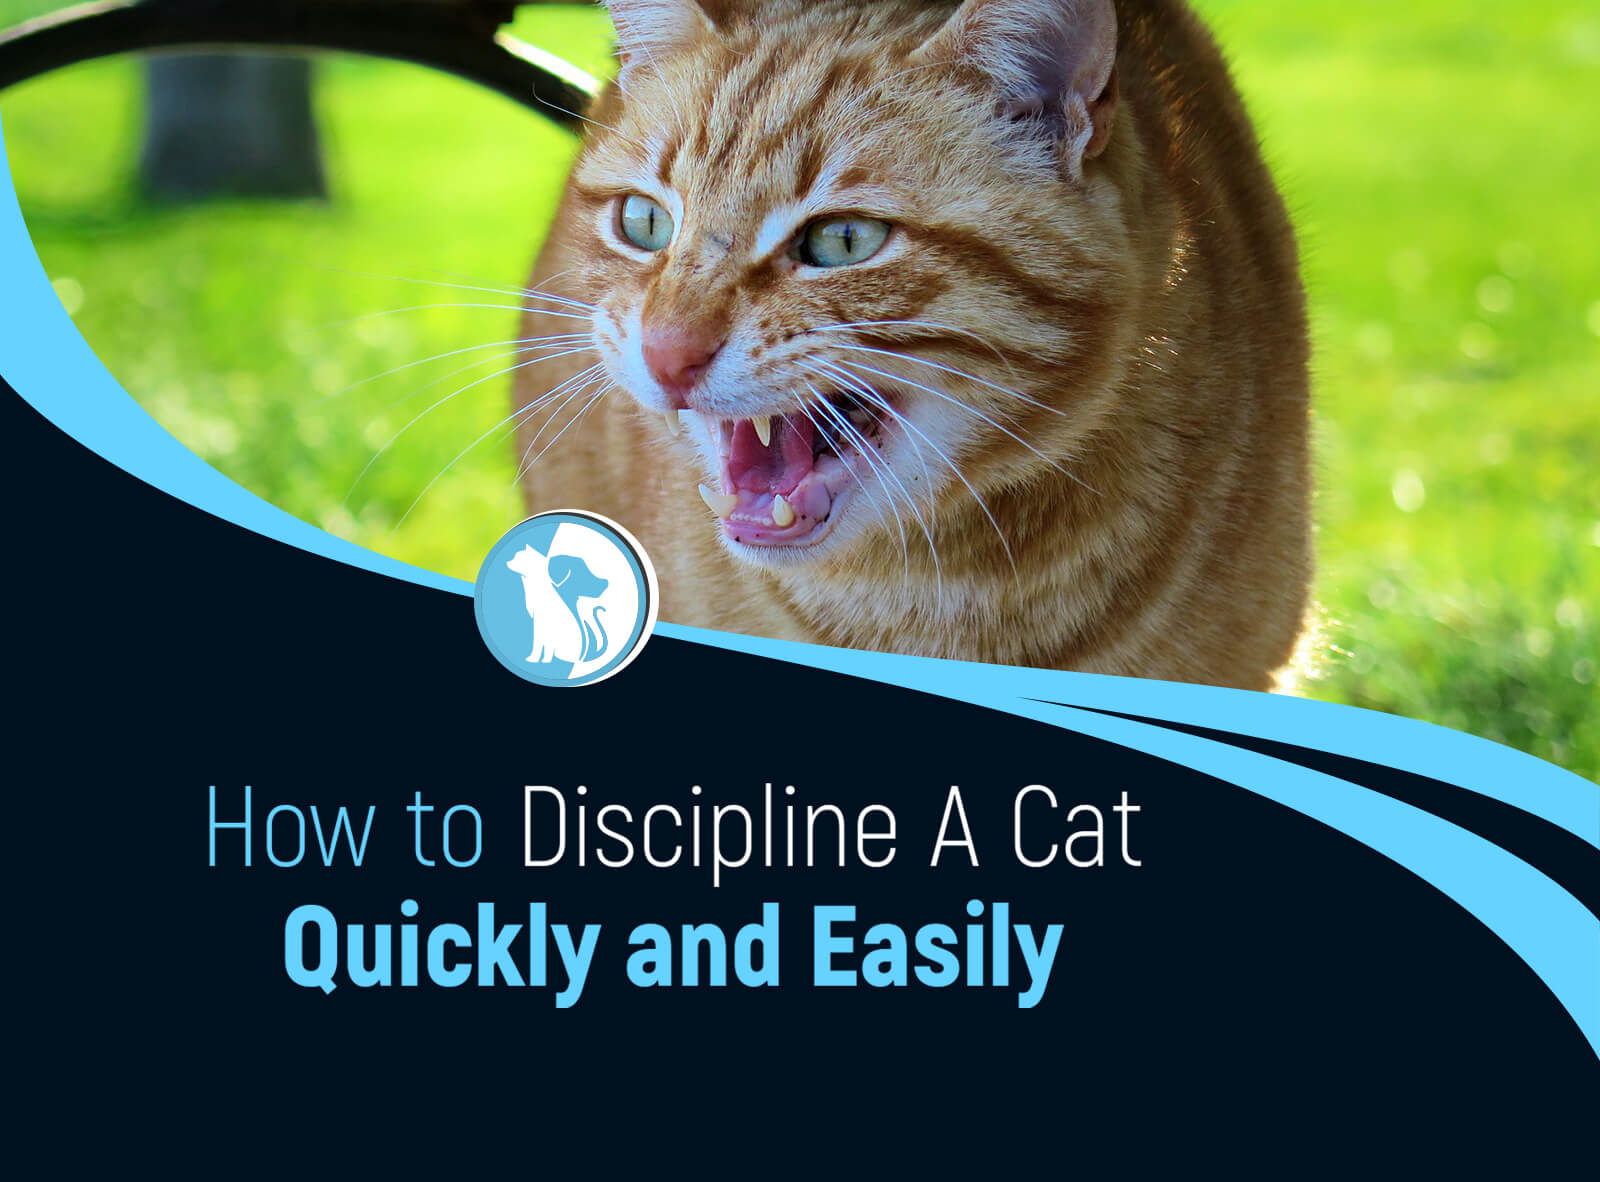 How to Discipline A Cat Quickly and Easily